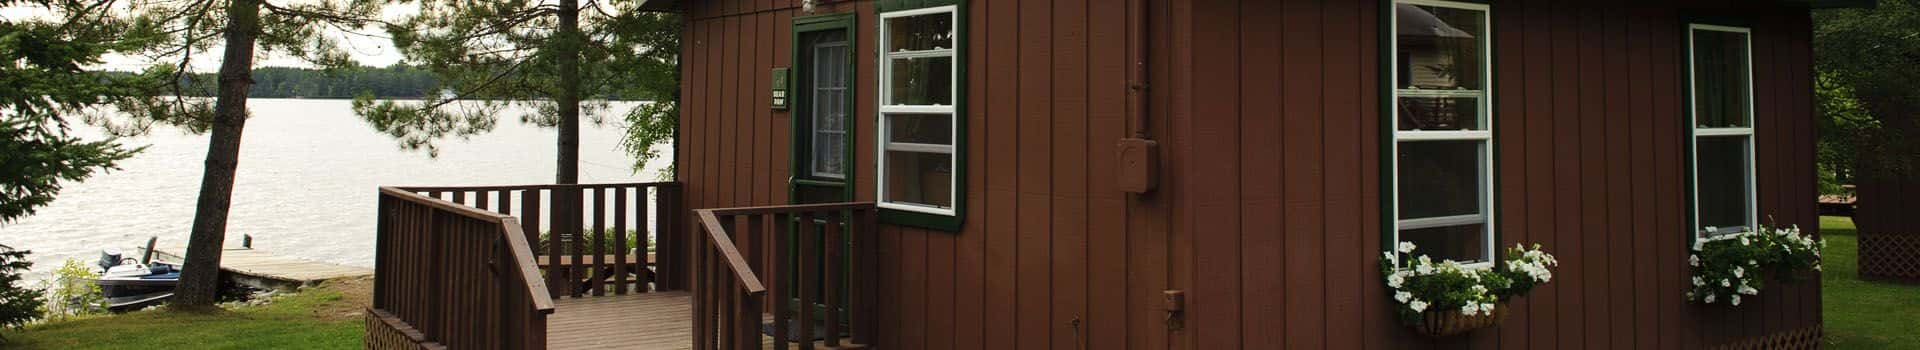 bear paw-lakeside-cabins-for-rent-ely-mn